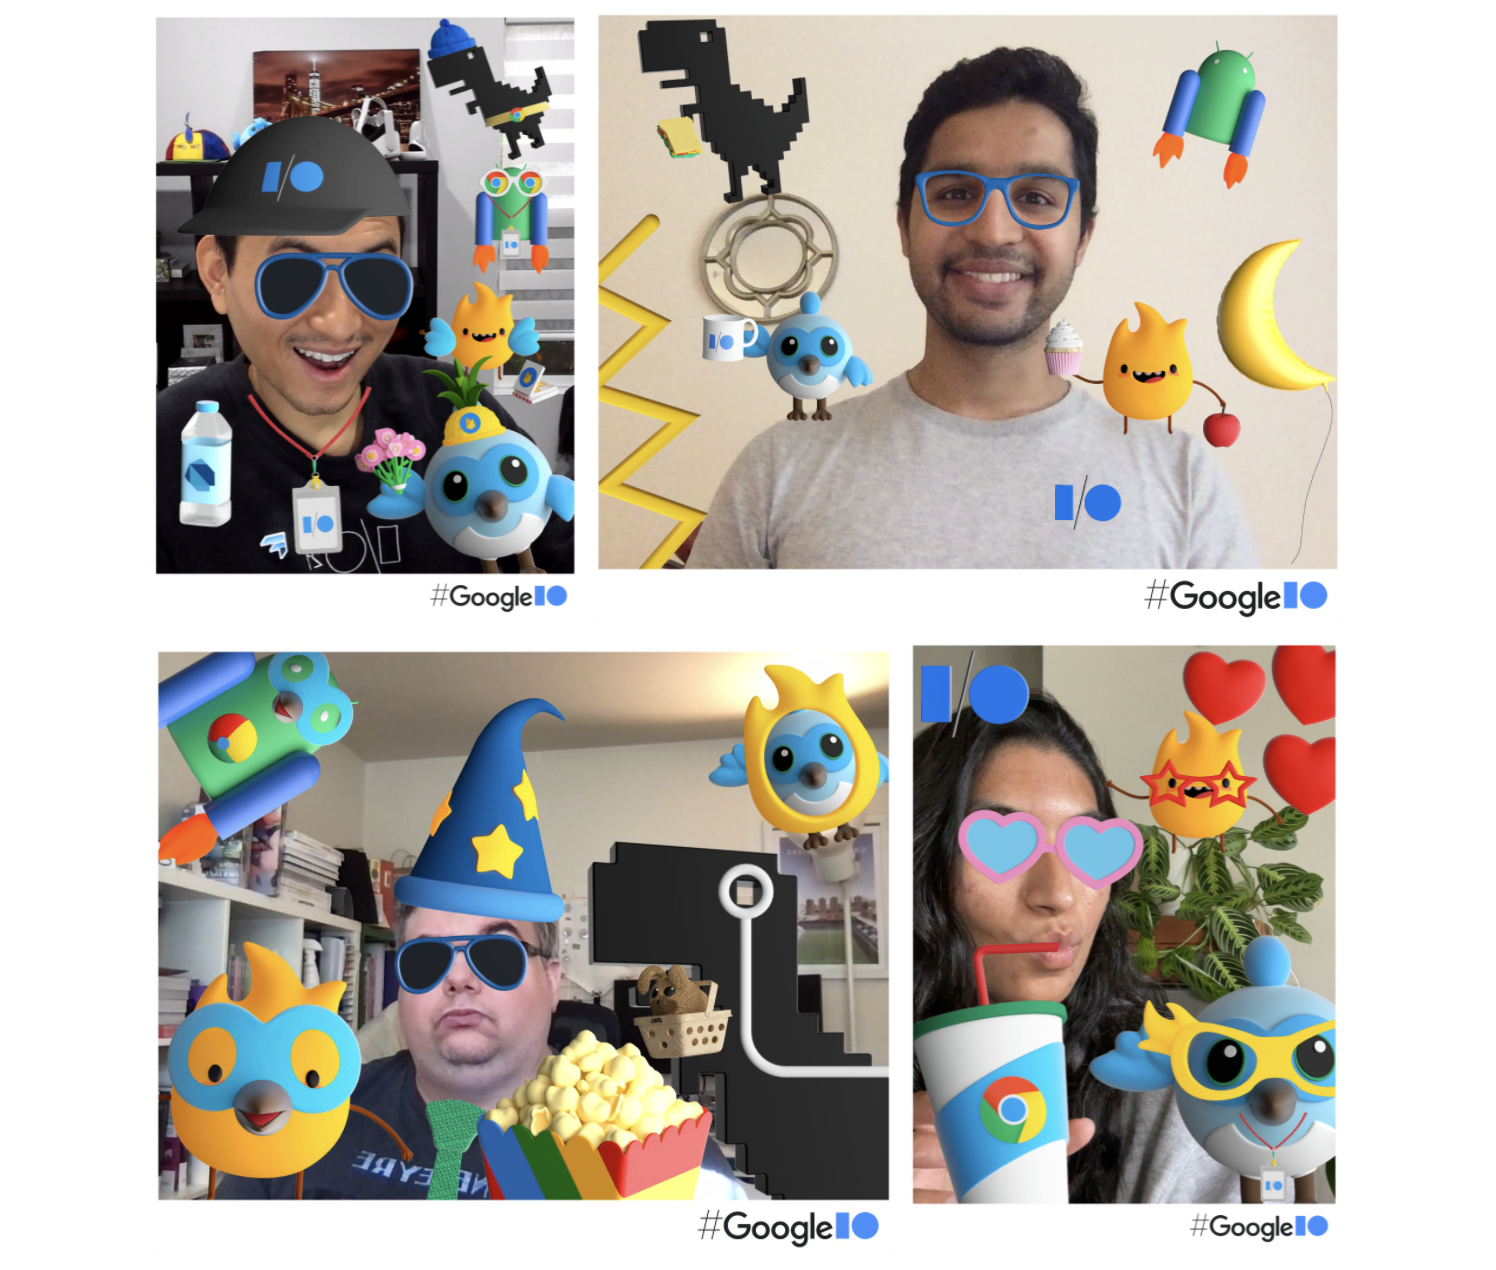 Flutter team members having fun in the photo booth